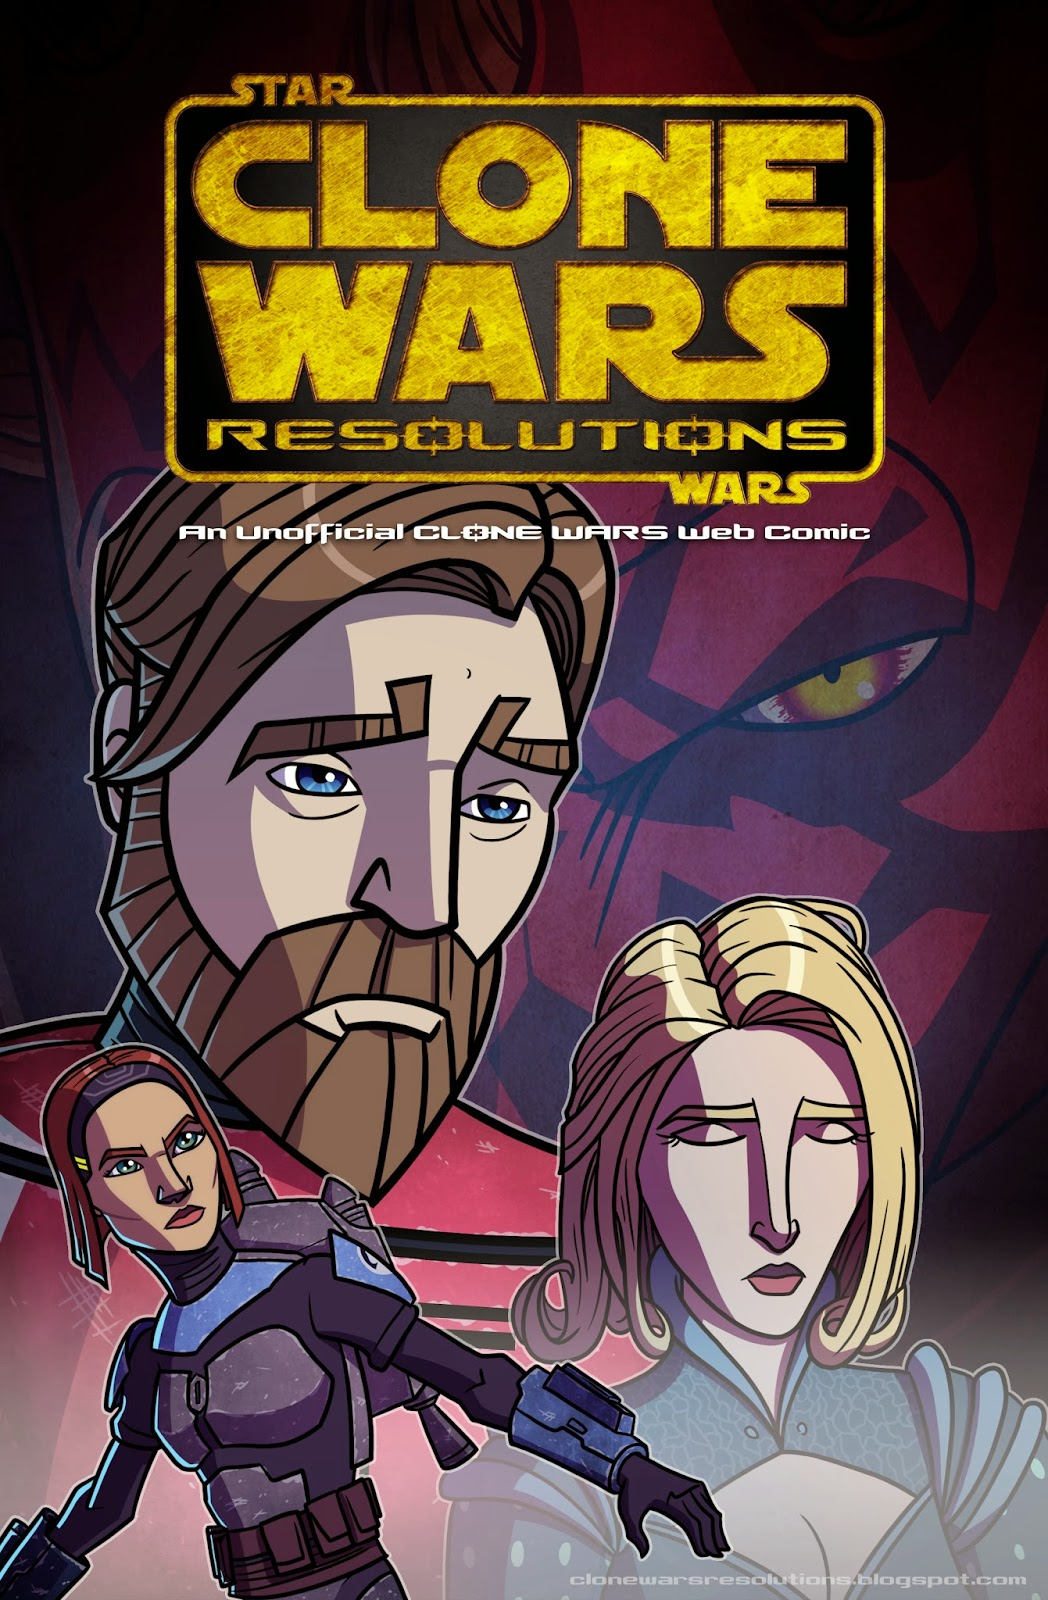 star-wars-clone-wars-resolutions-hope-cover-joe-hogan